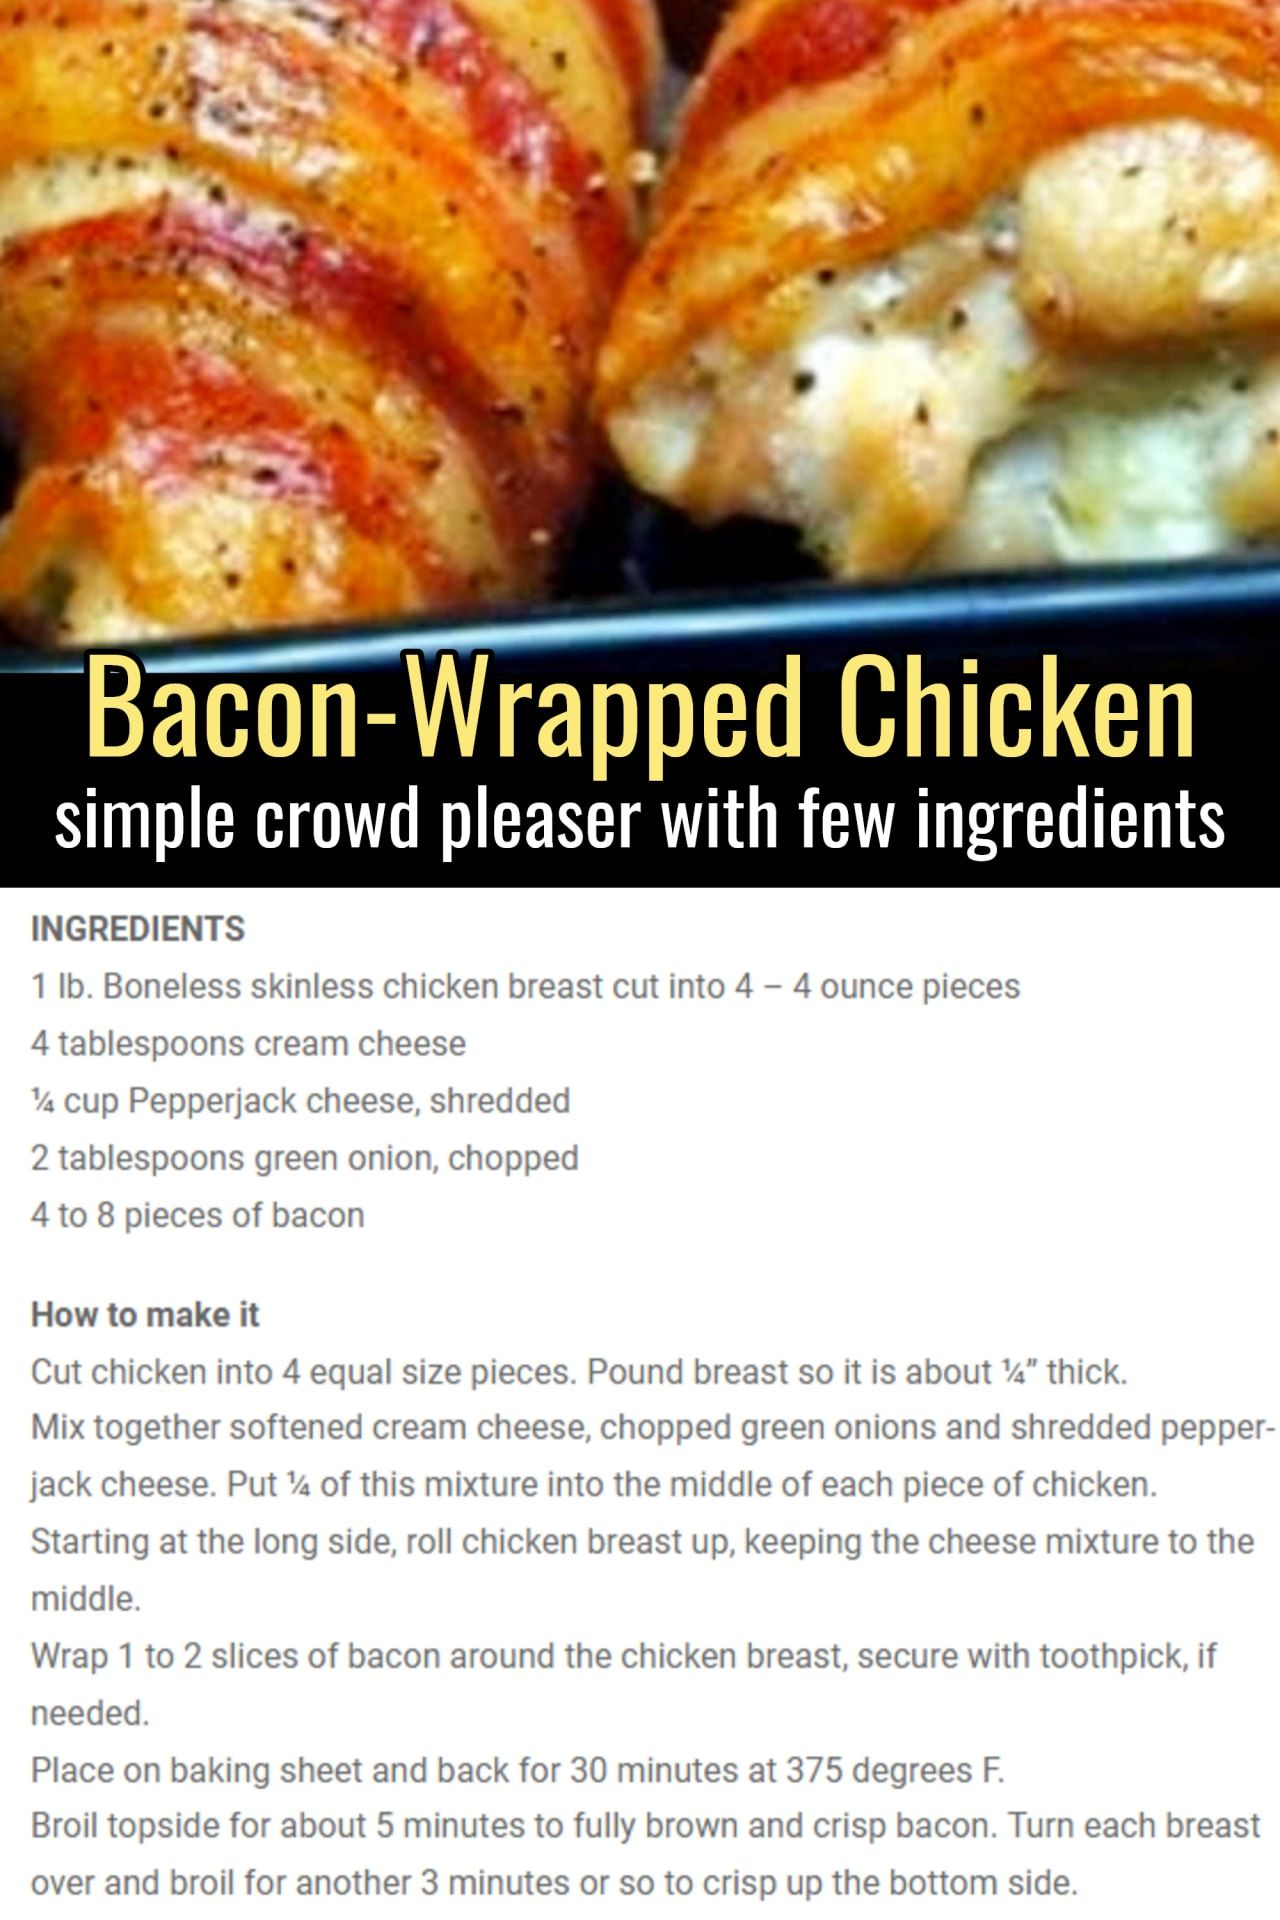 Easy Recipes with Few Ingredients - My Family's Favorite Easy Dinner Recipes images